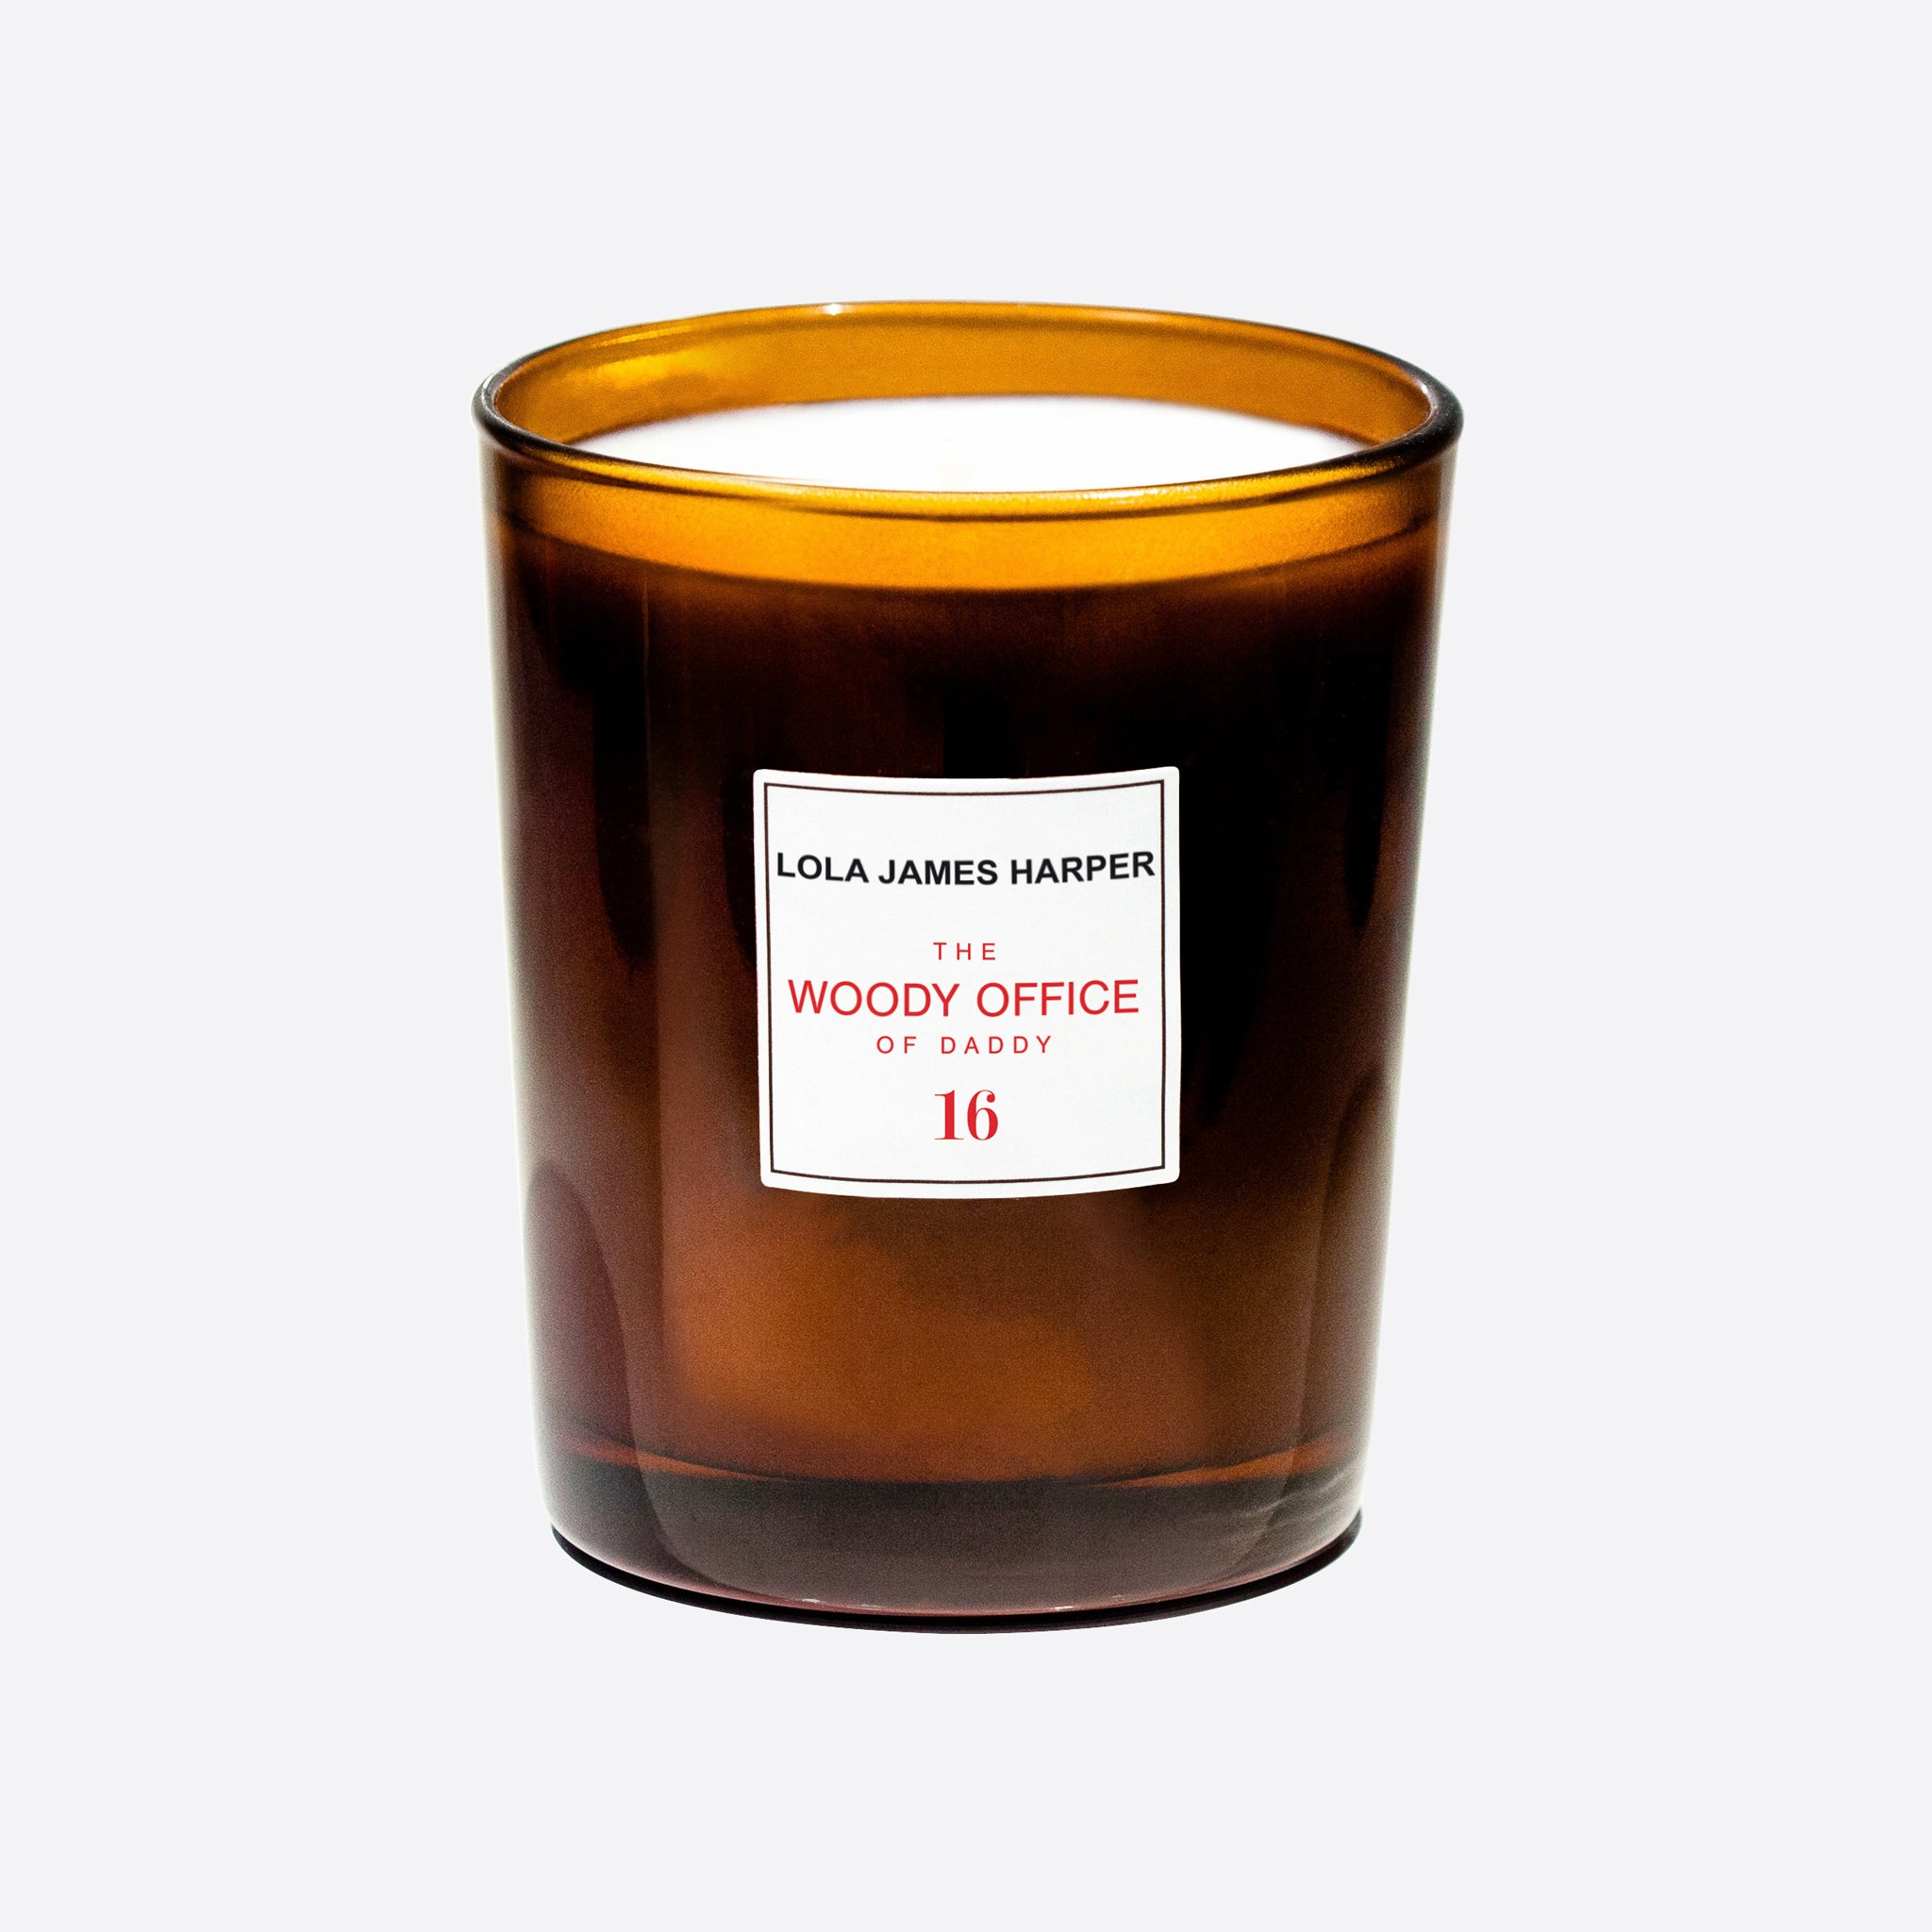 Lola James Harper Candle - Woody Office